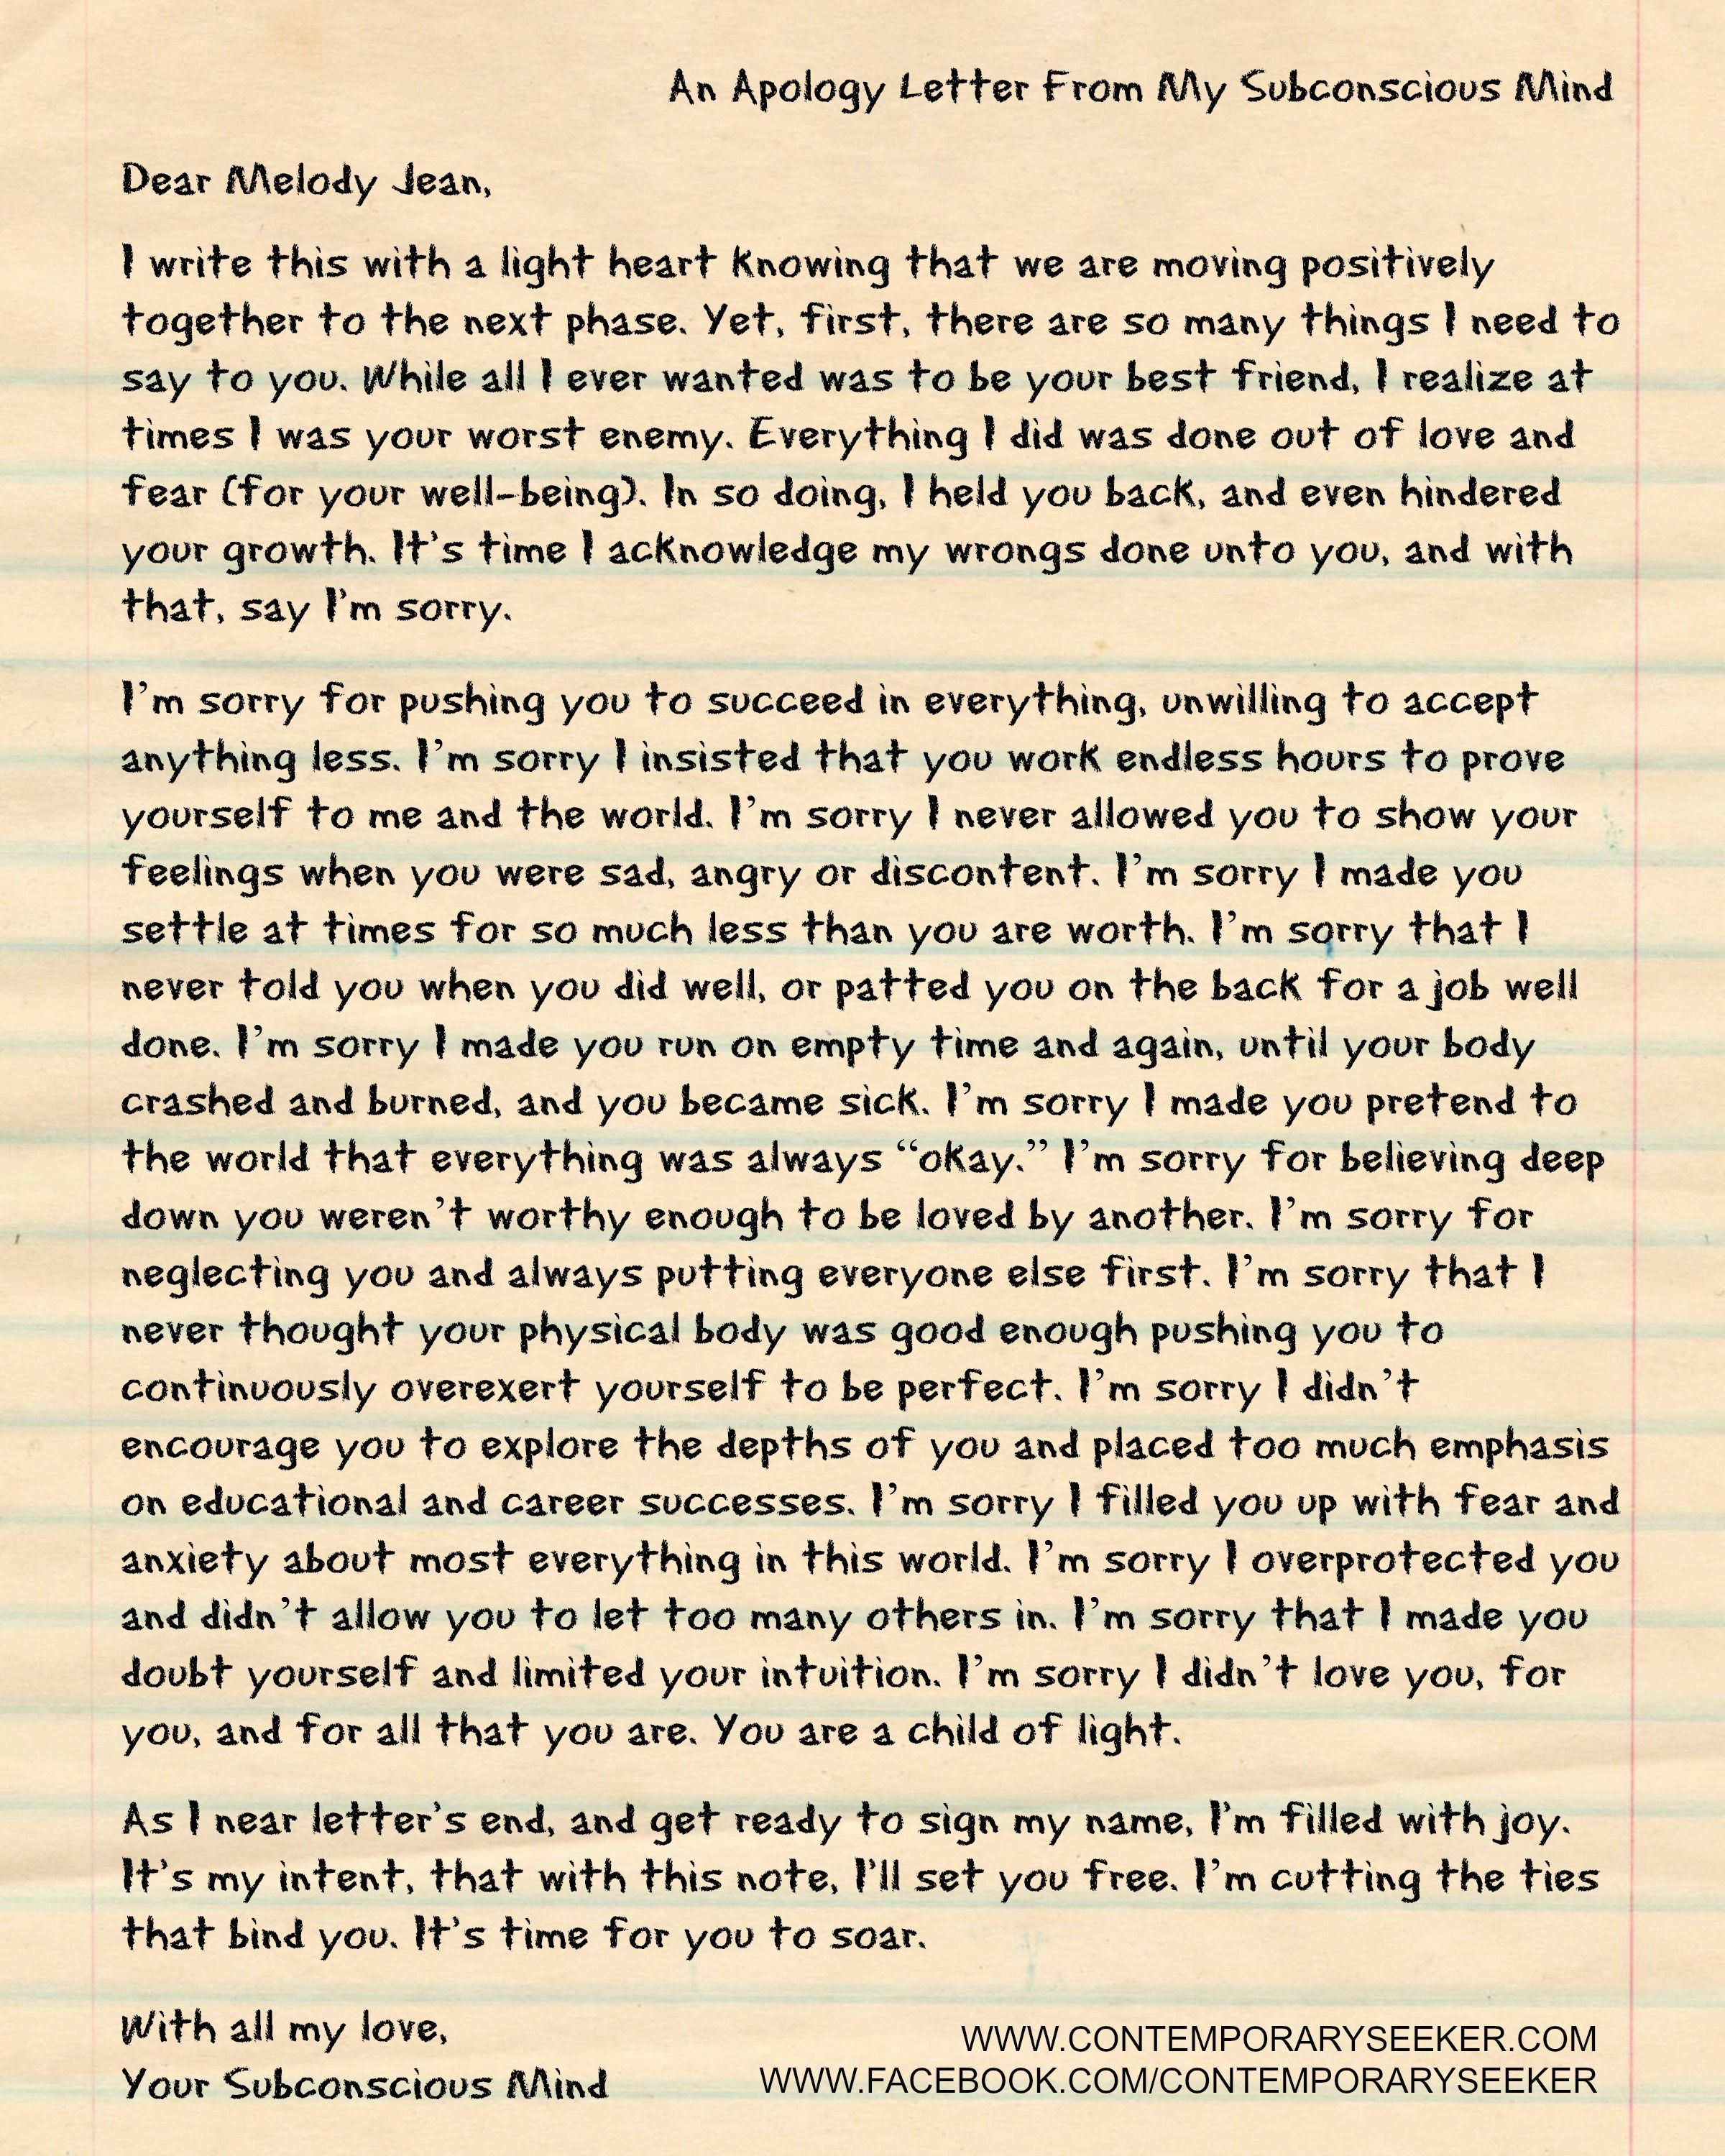 An Apology Letter From My Subconscious Mind Contemporary Seeker